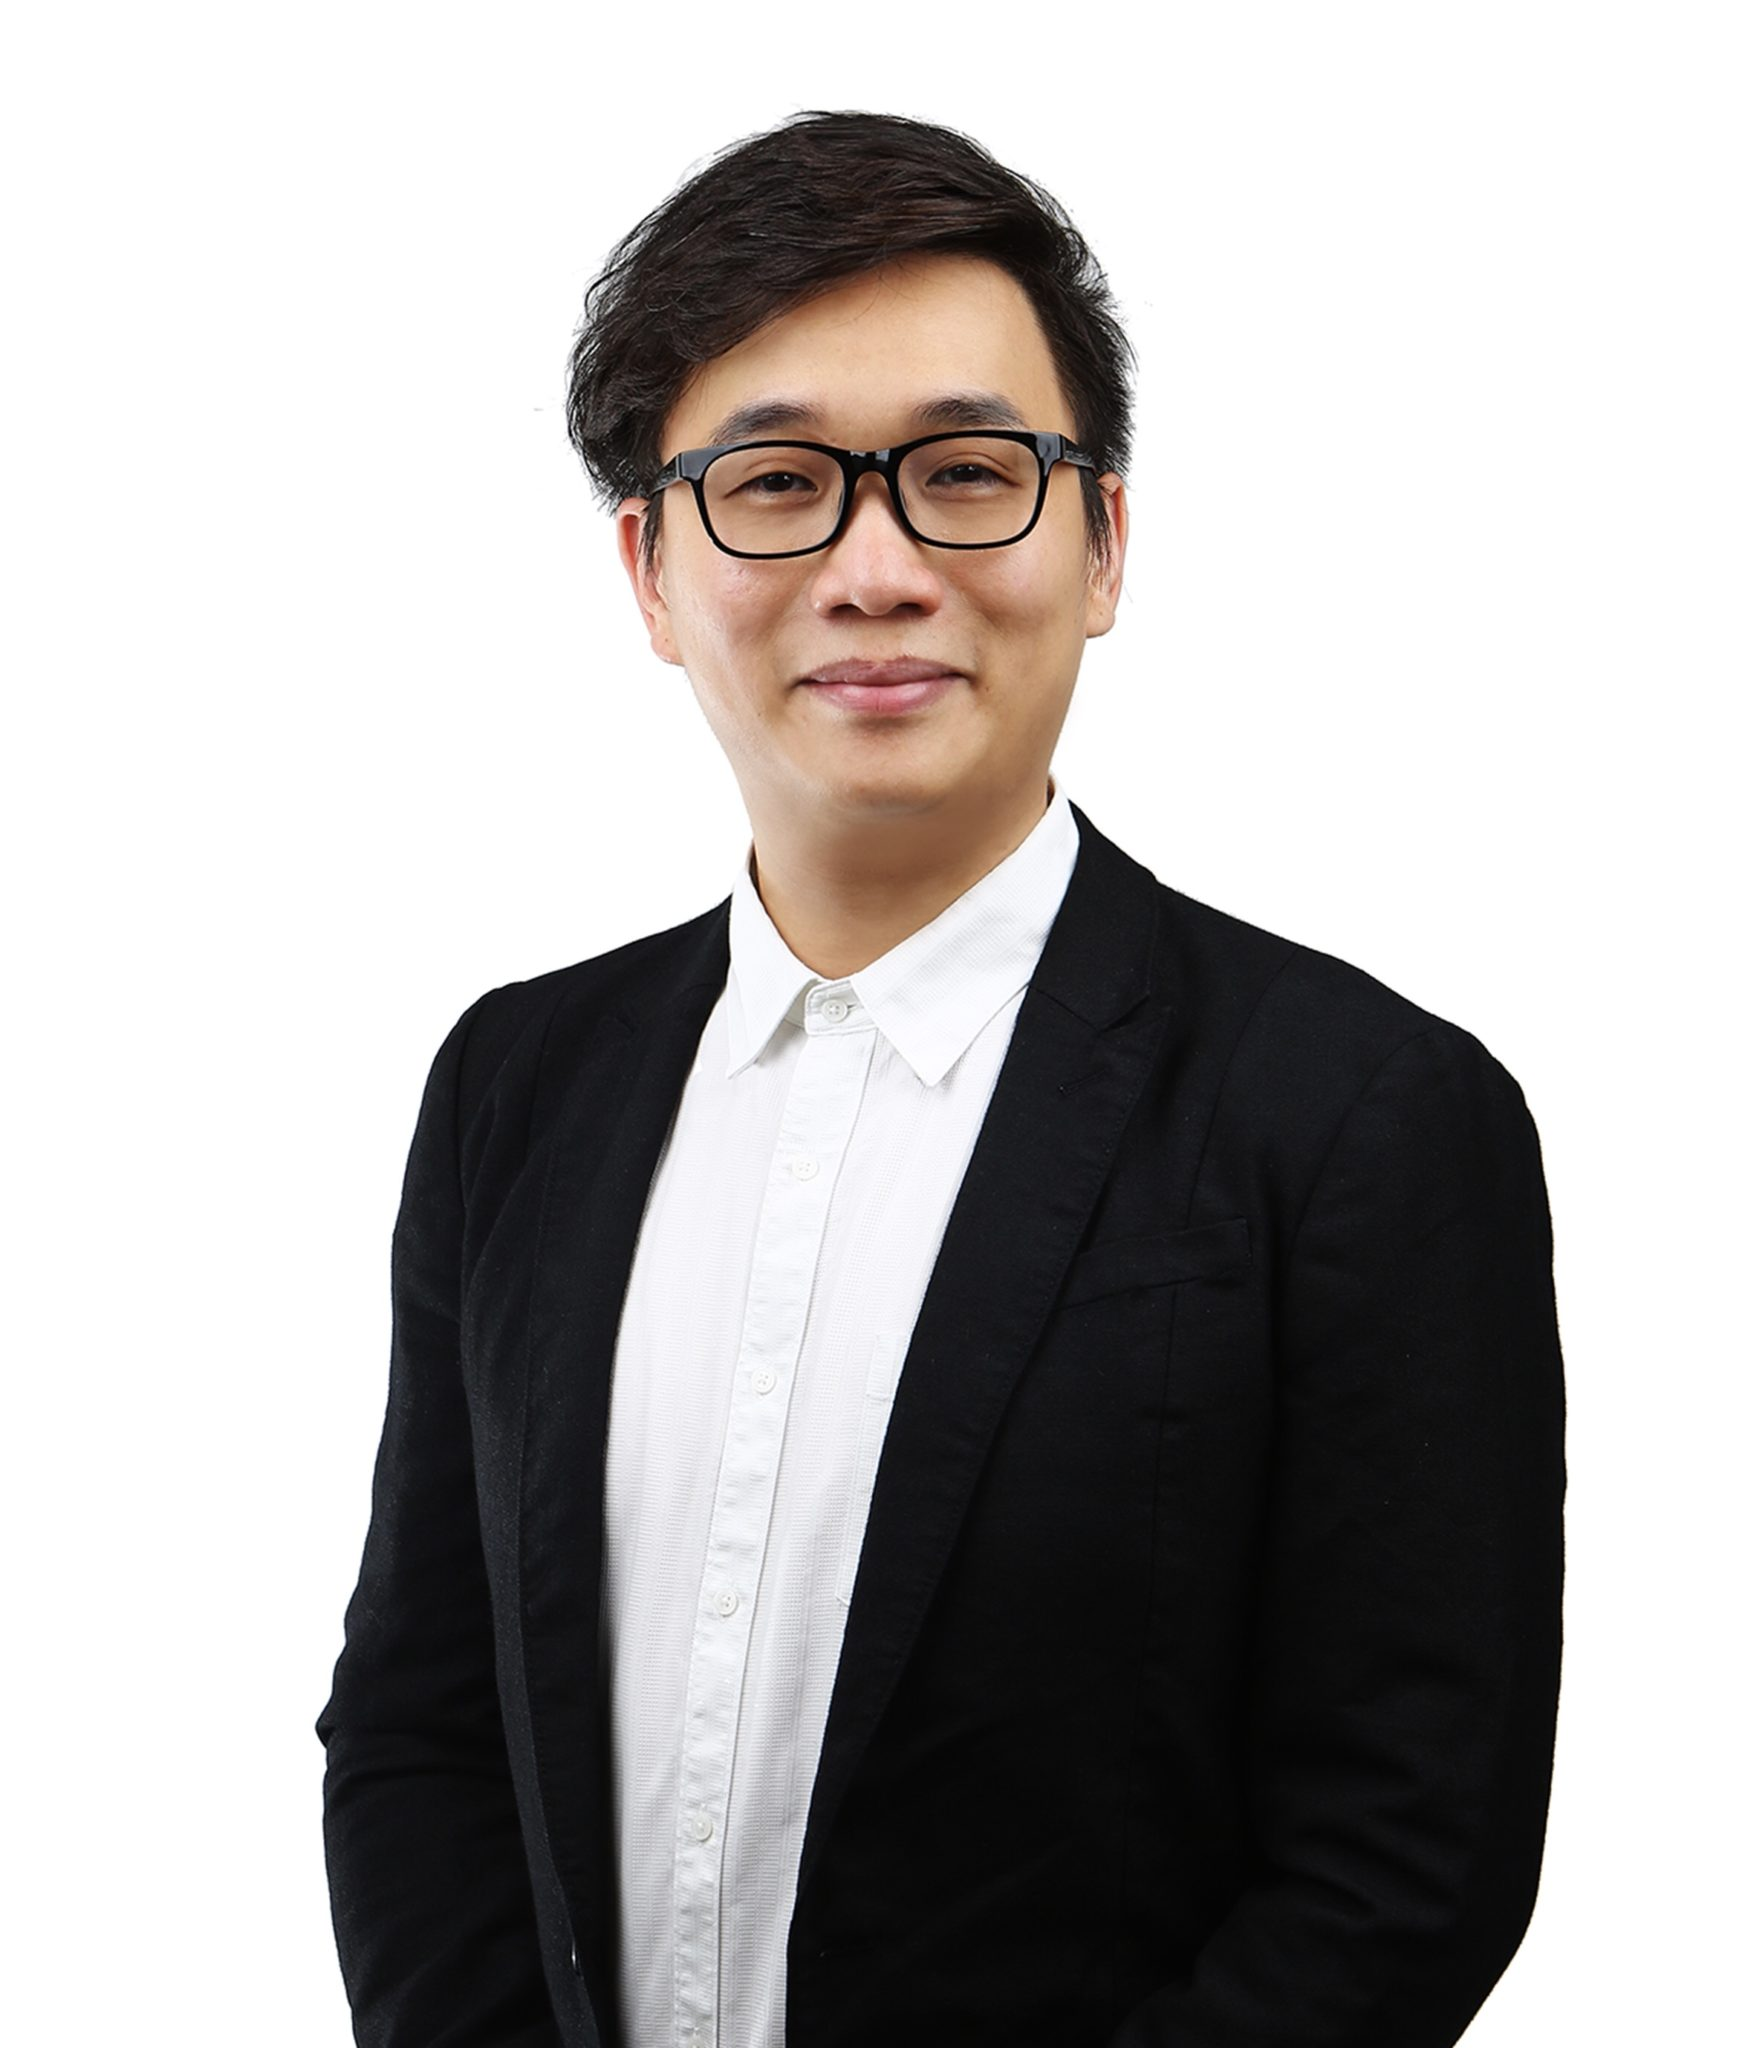 , Completed work is better than perfect work. Anndy Lian, Blockchain Adviser for Inter-Governmental Organisation | Book Author | Investor | Board Member